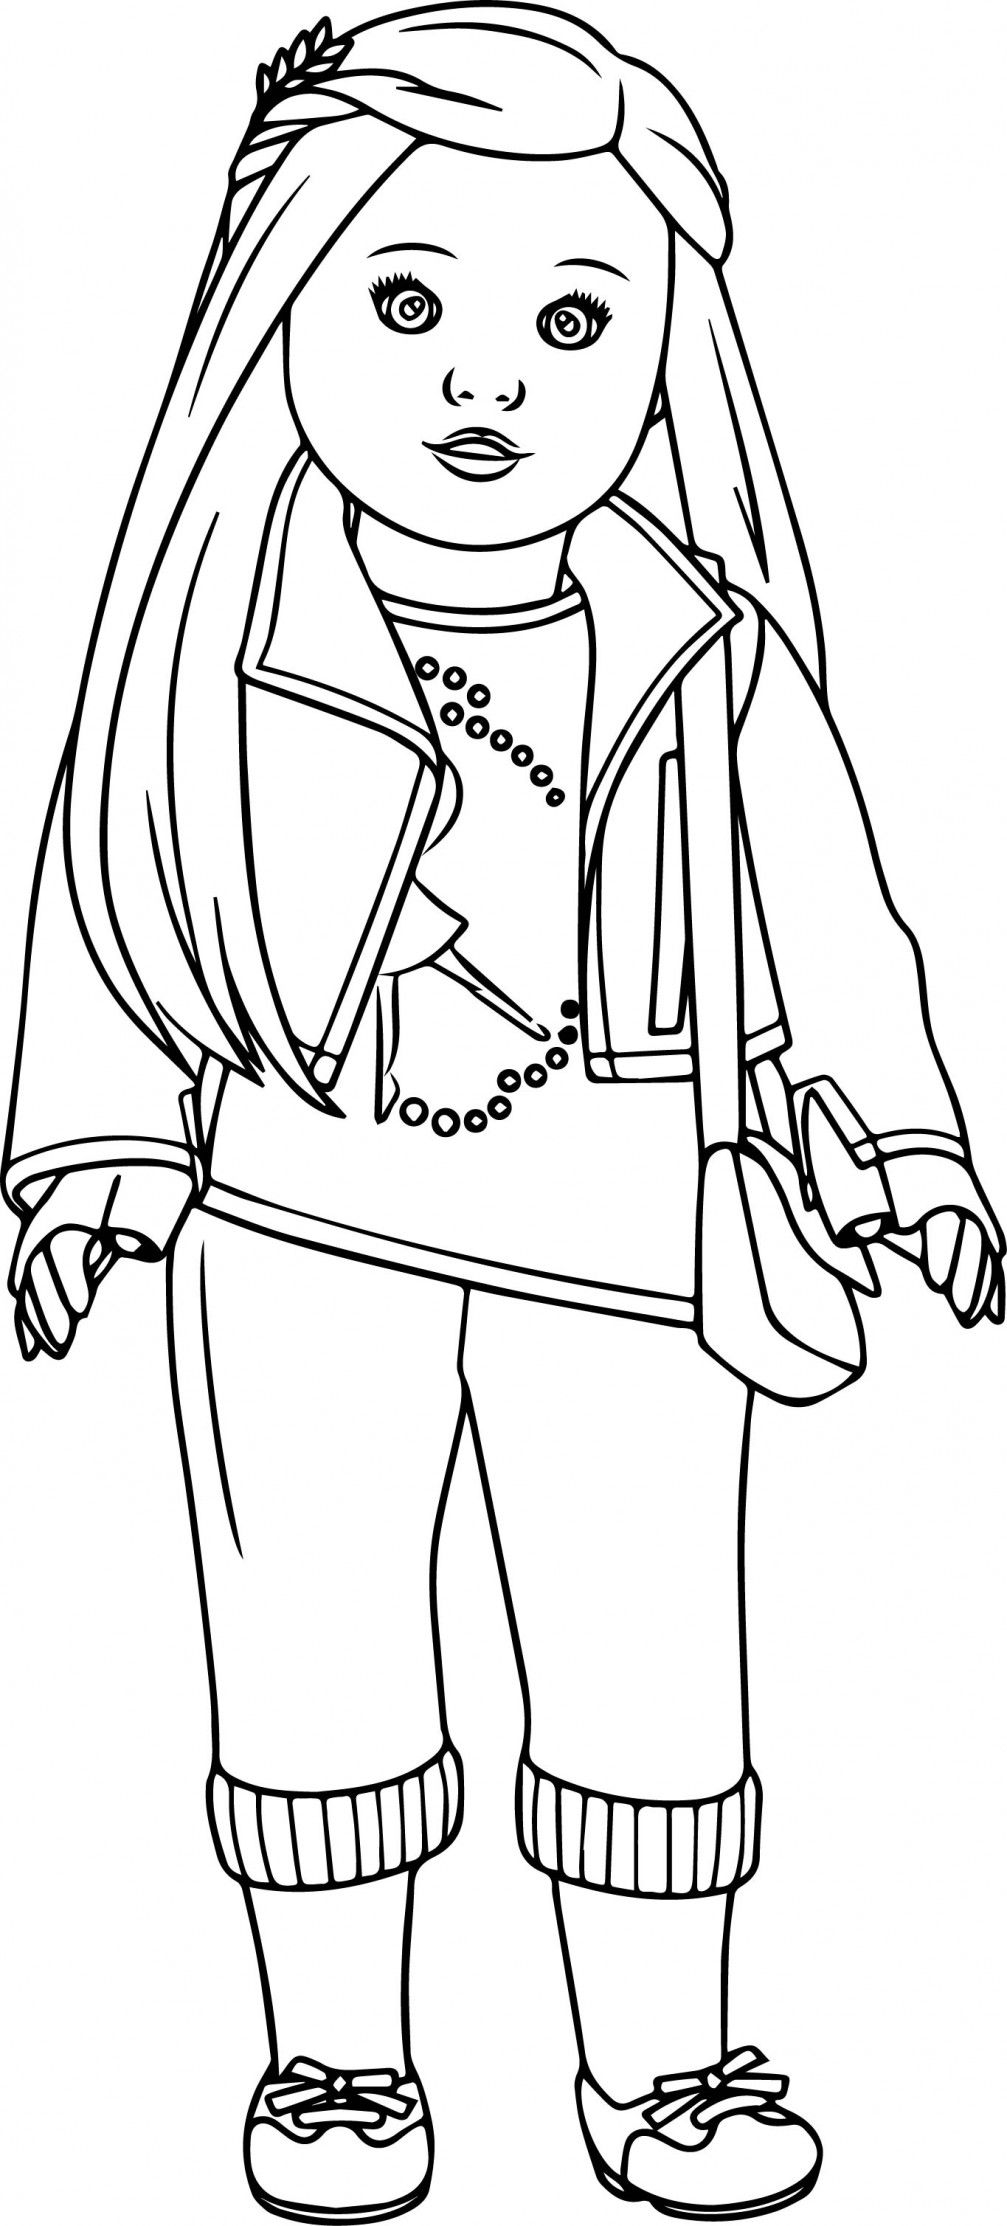 printable colouring pages for girls cute girl coloring pages to download and print for free for pages colouring printable girls